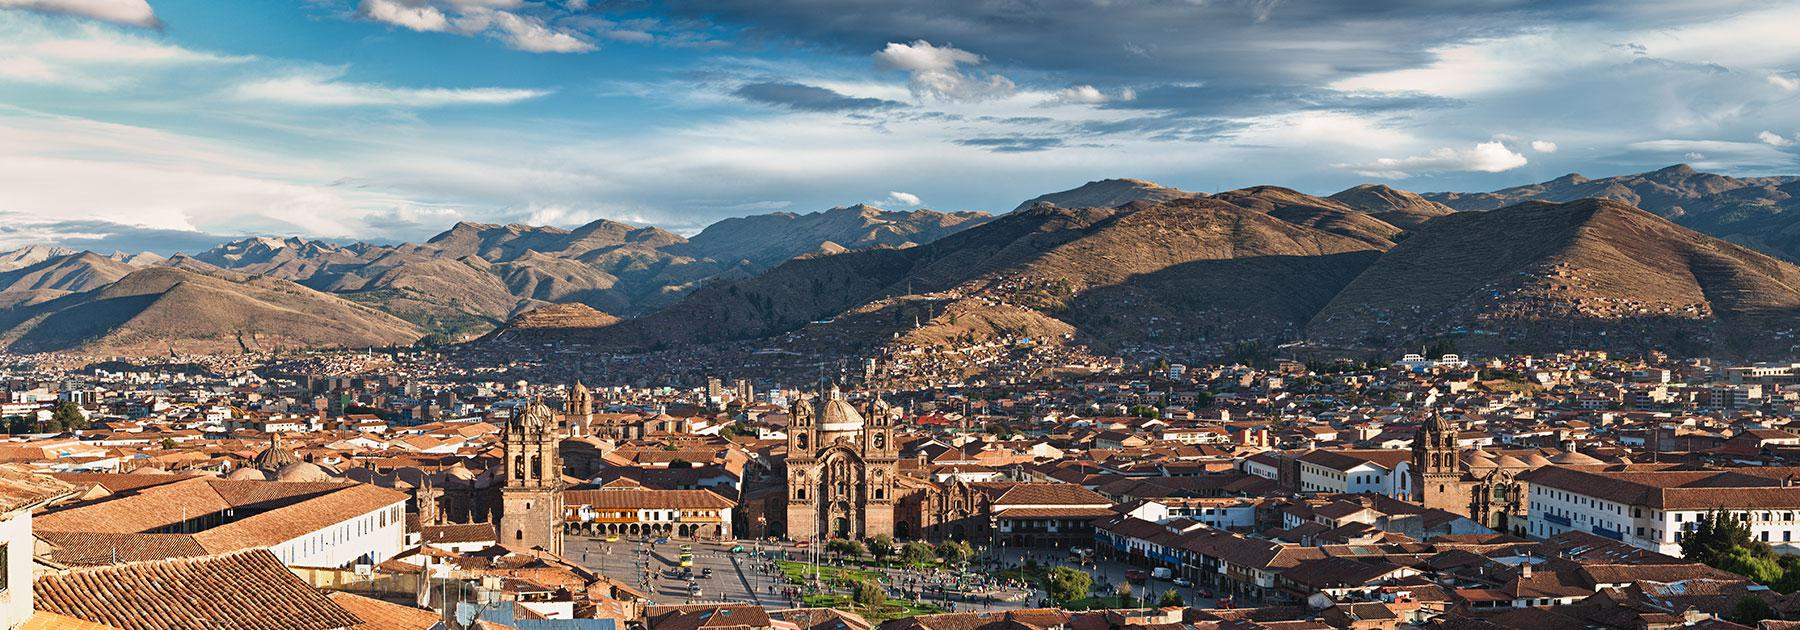 Peru: Lima, Cusco, Machu Picchu Group Tour